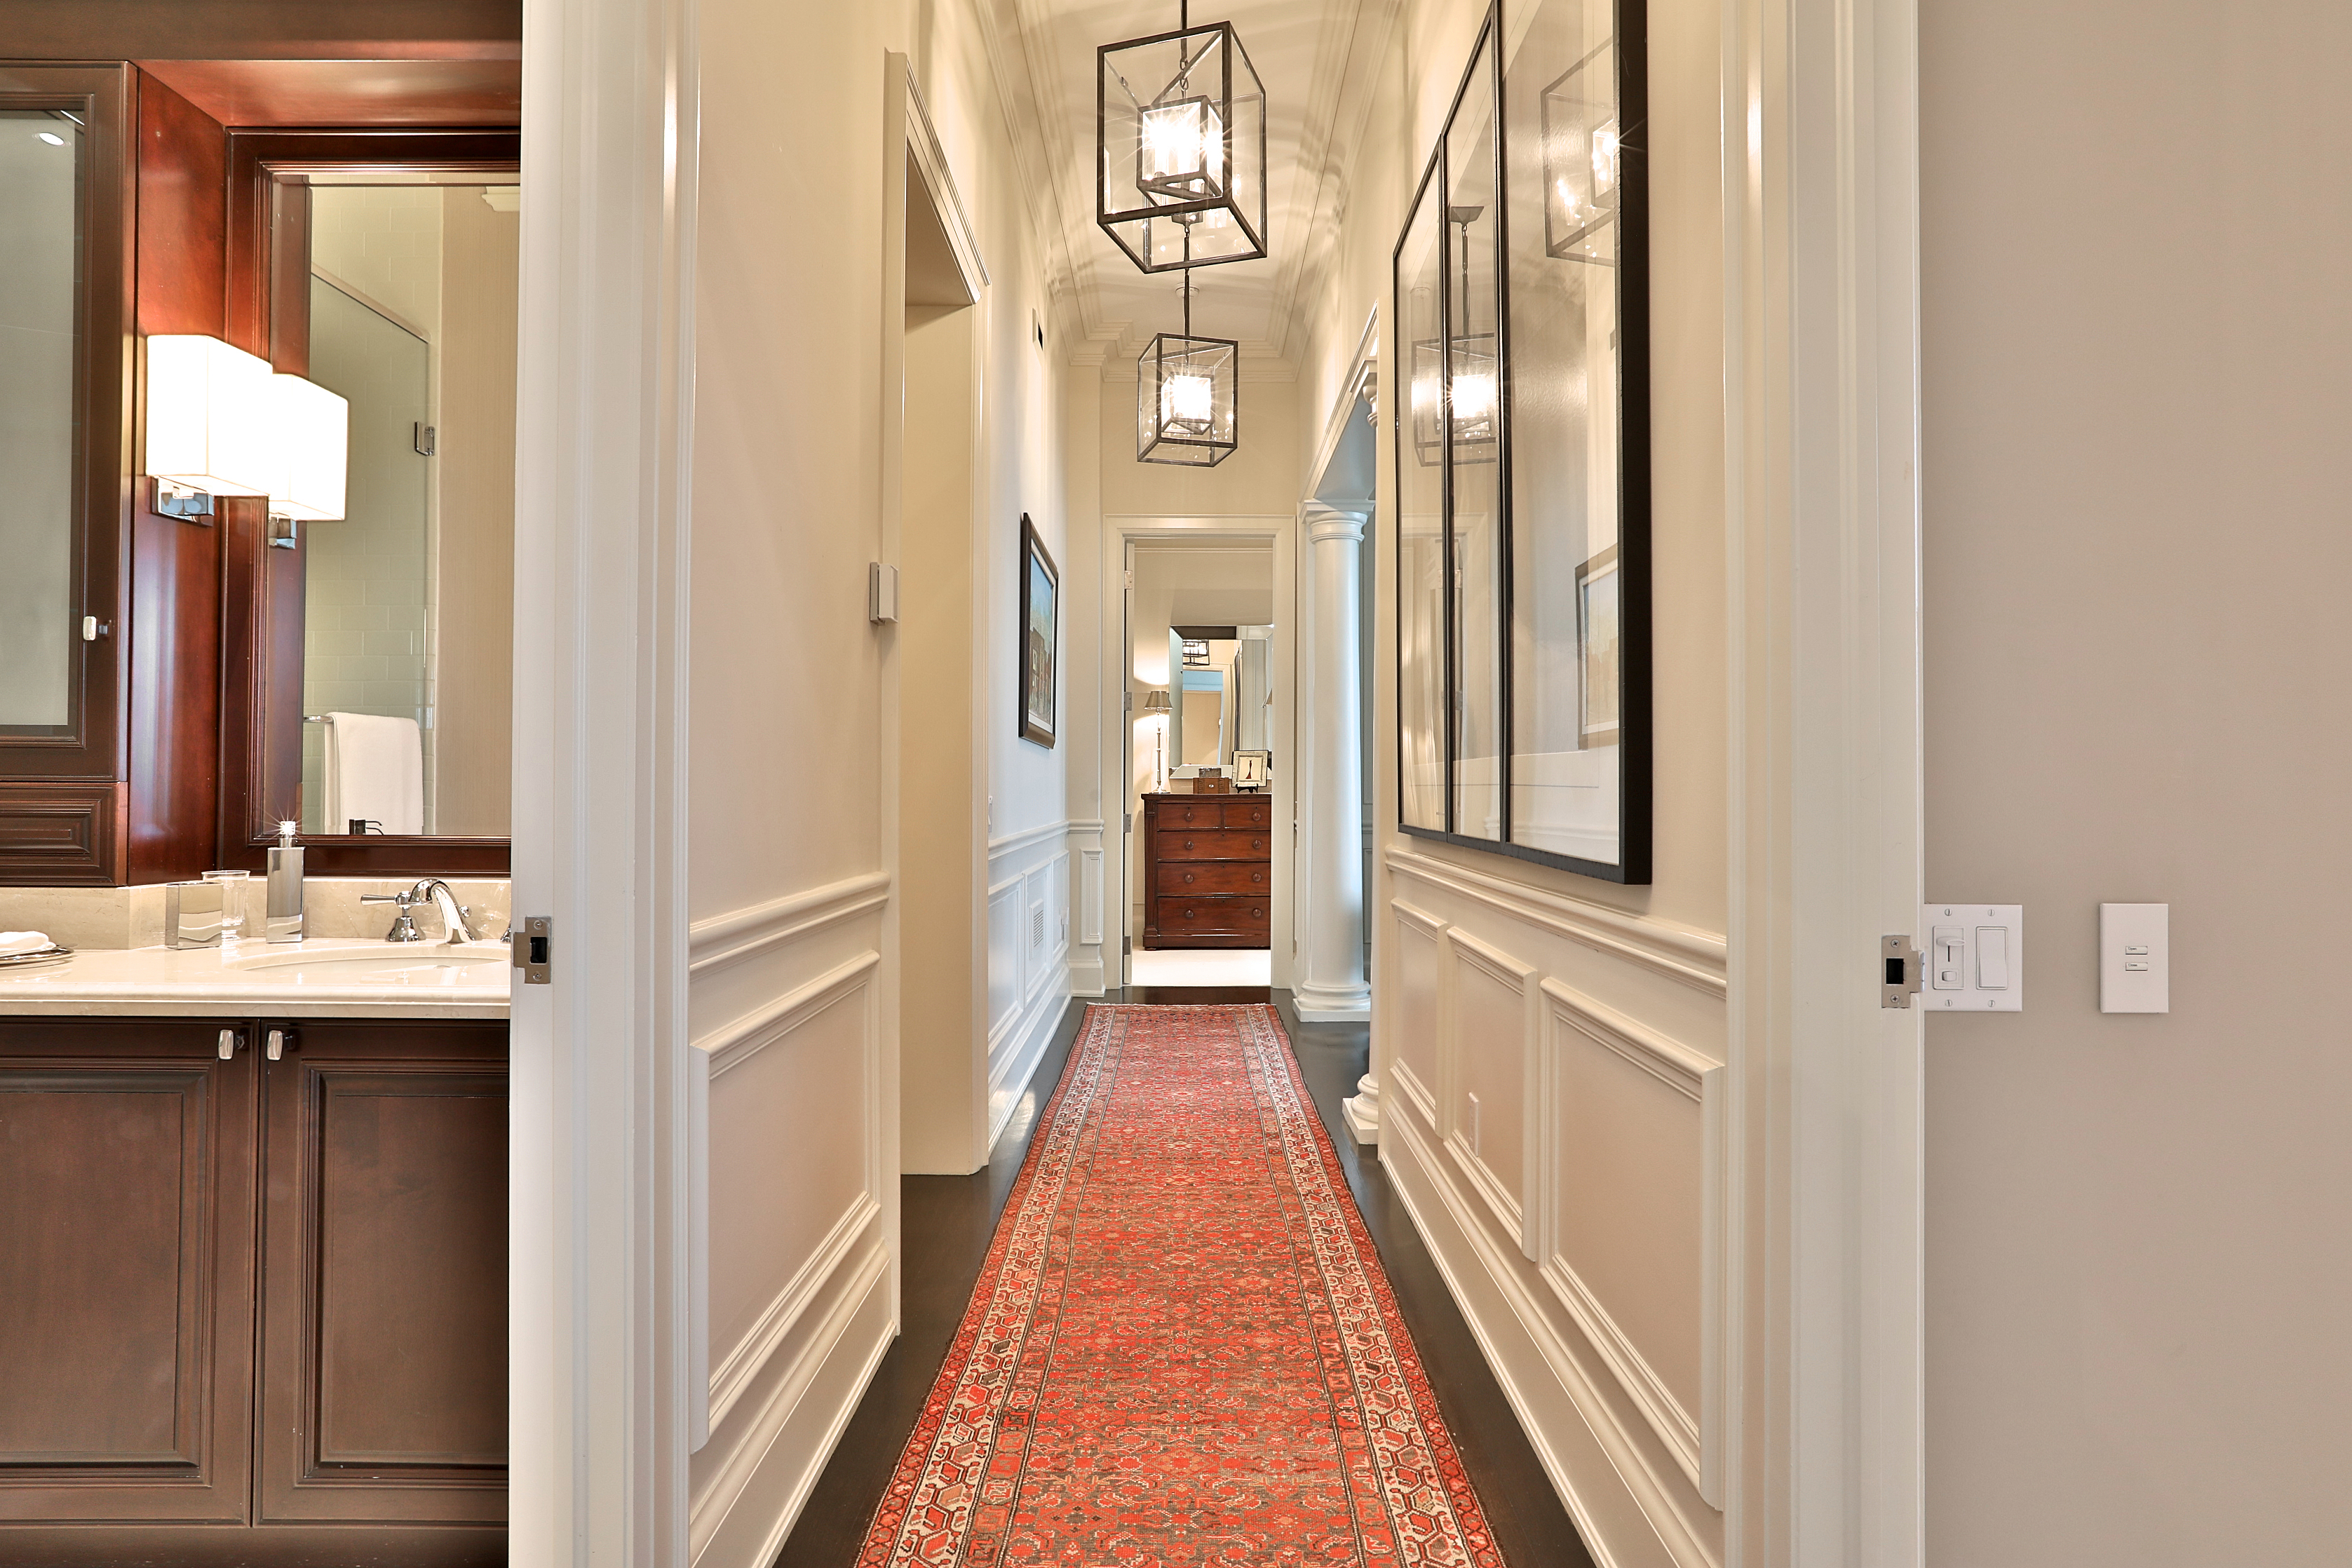 Hallway to Bedroom and Office